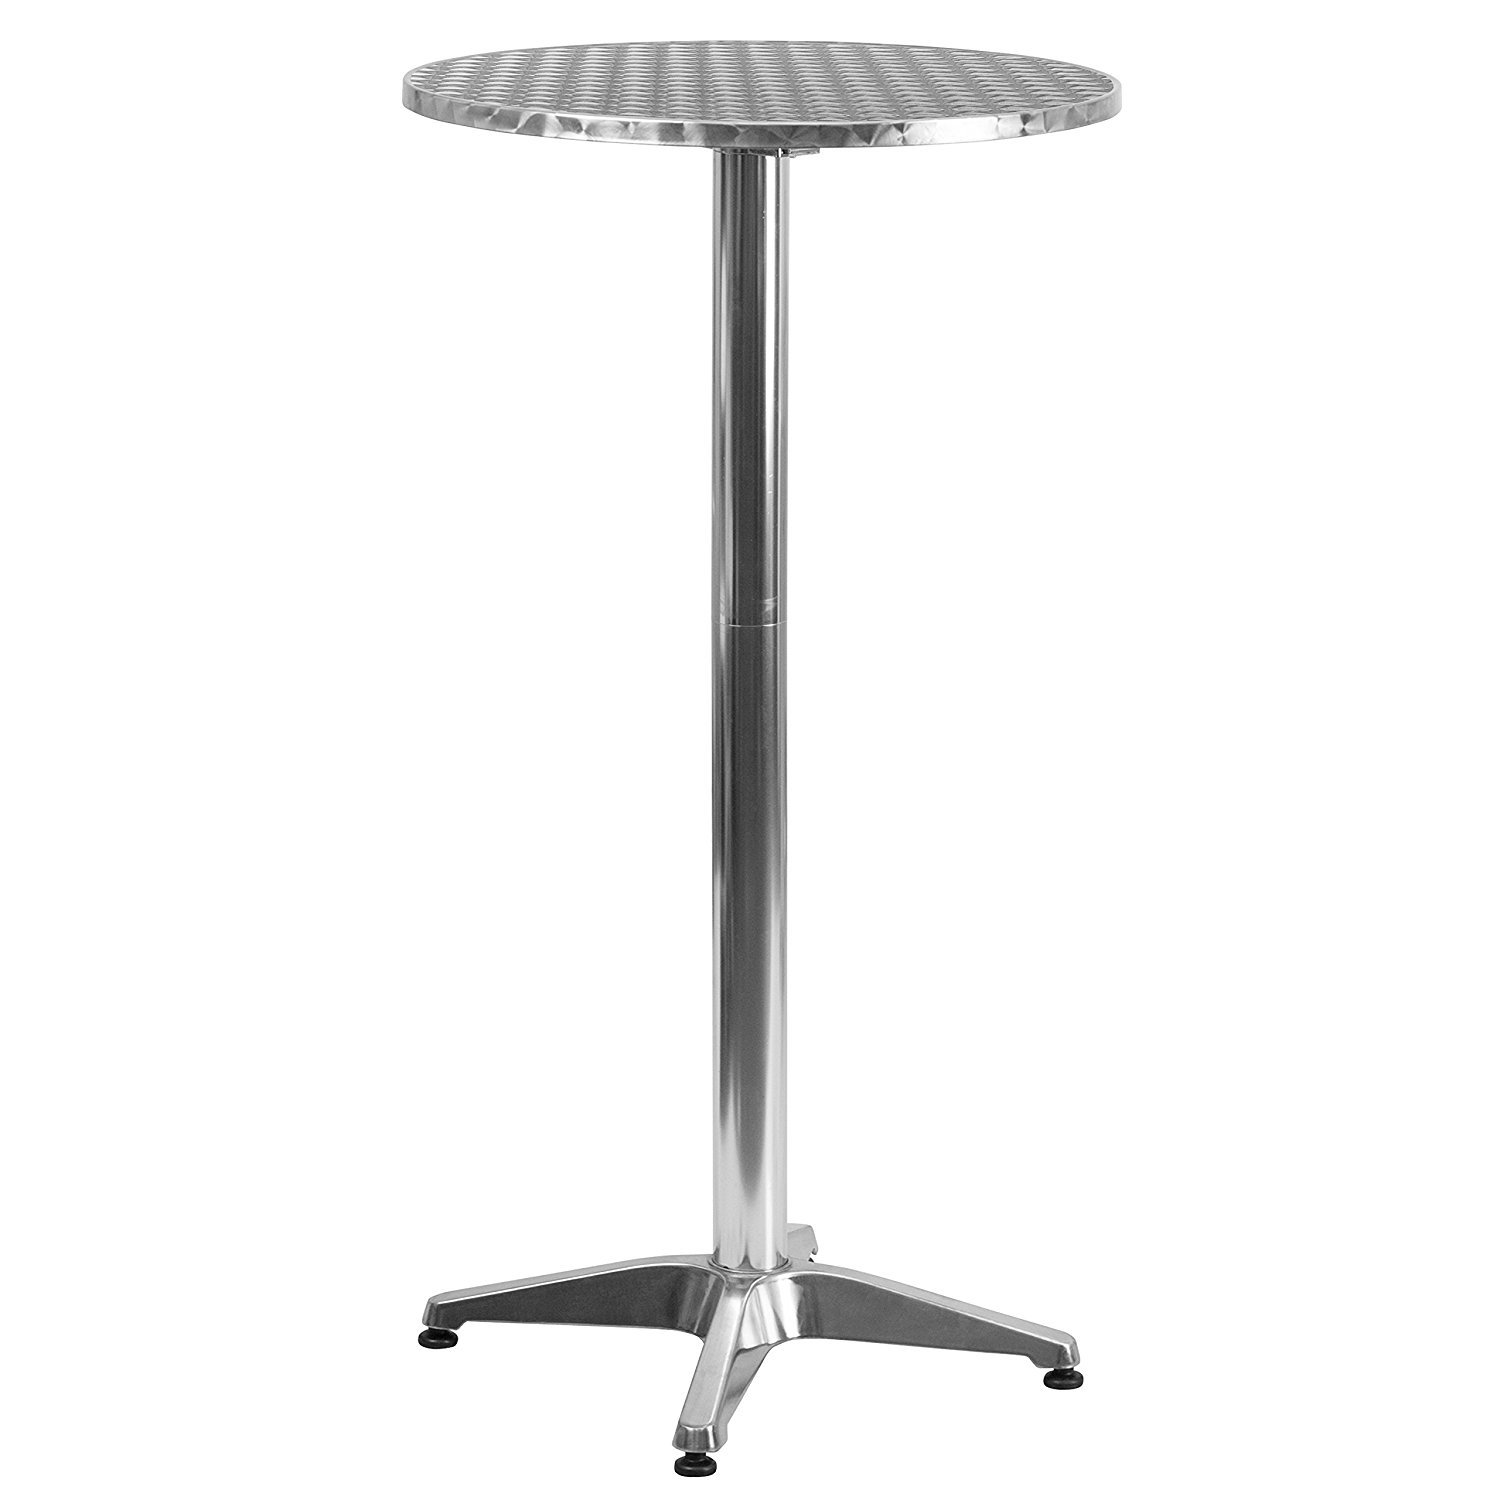 Event Decor Bistro Foldable Poseur Round Aluminium Bar Table 2 Adjustable Heights Stainless Steel Steady